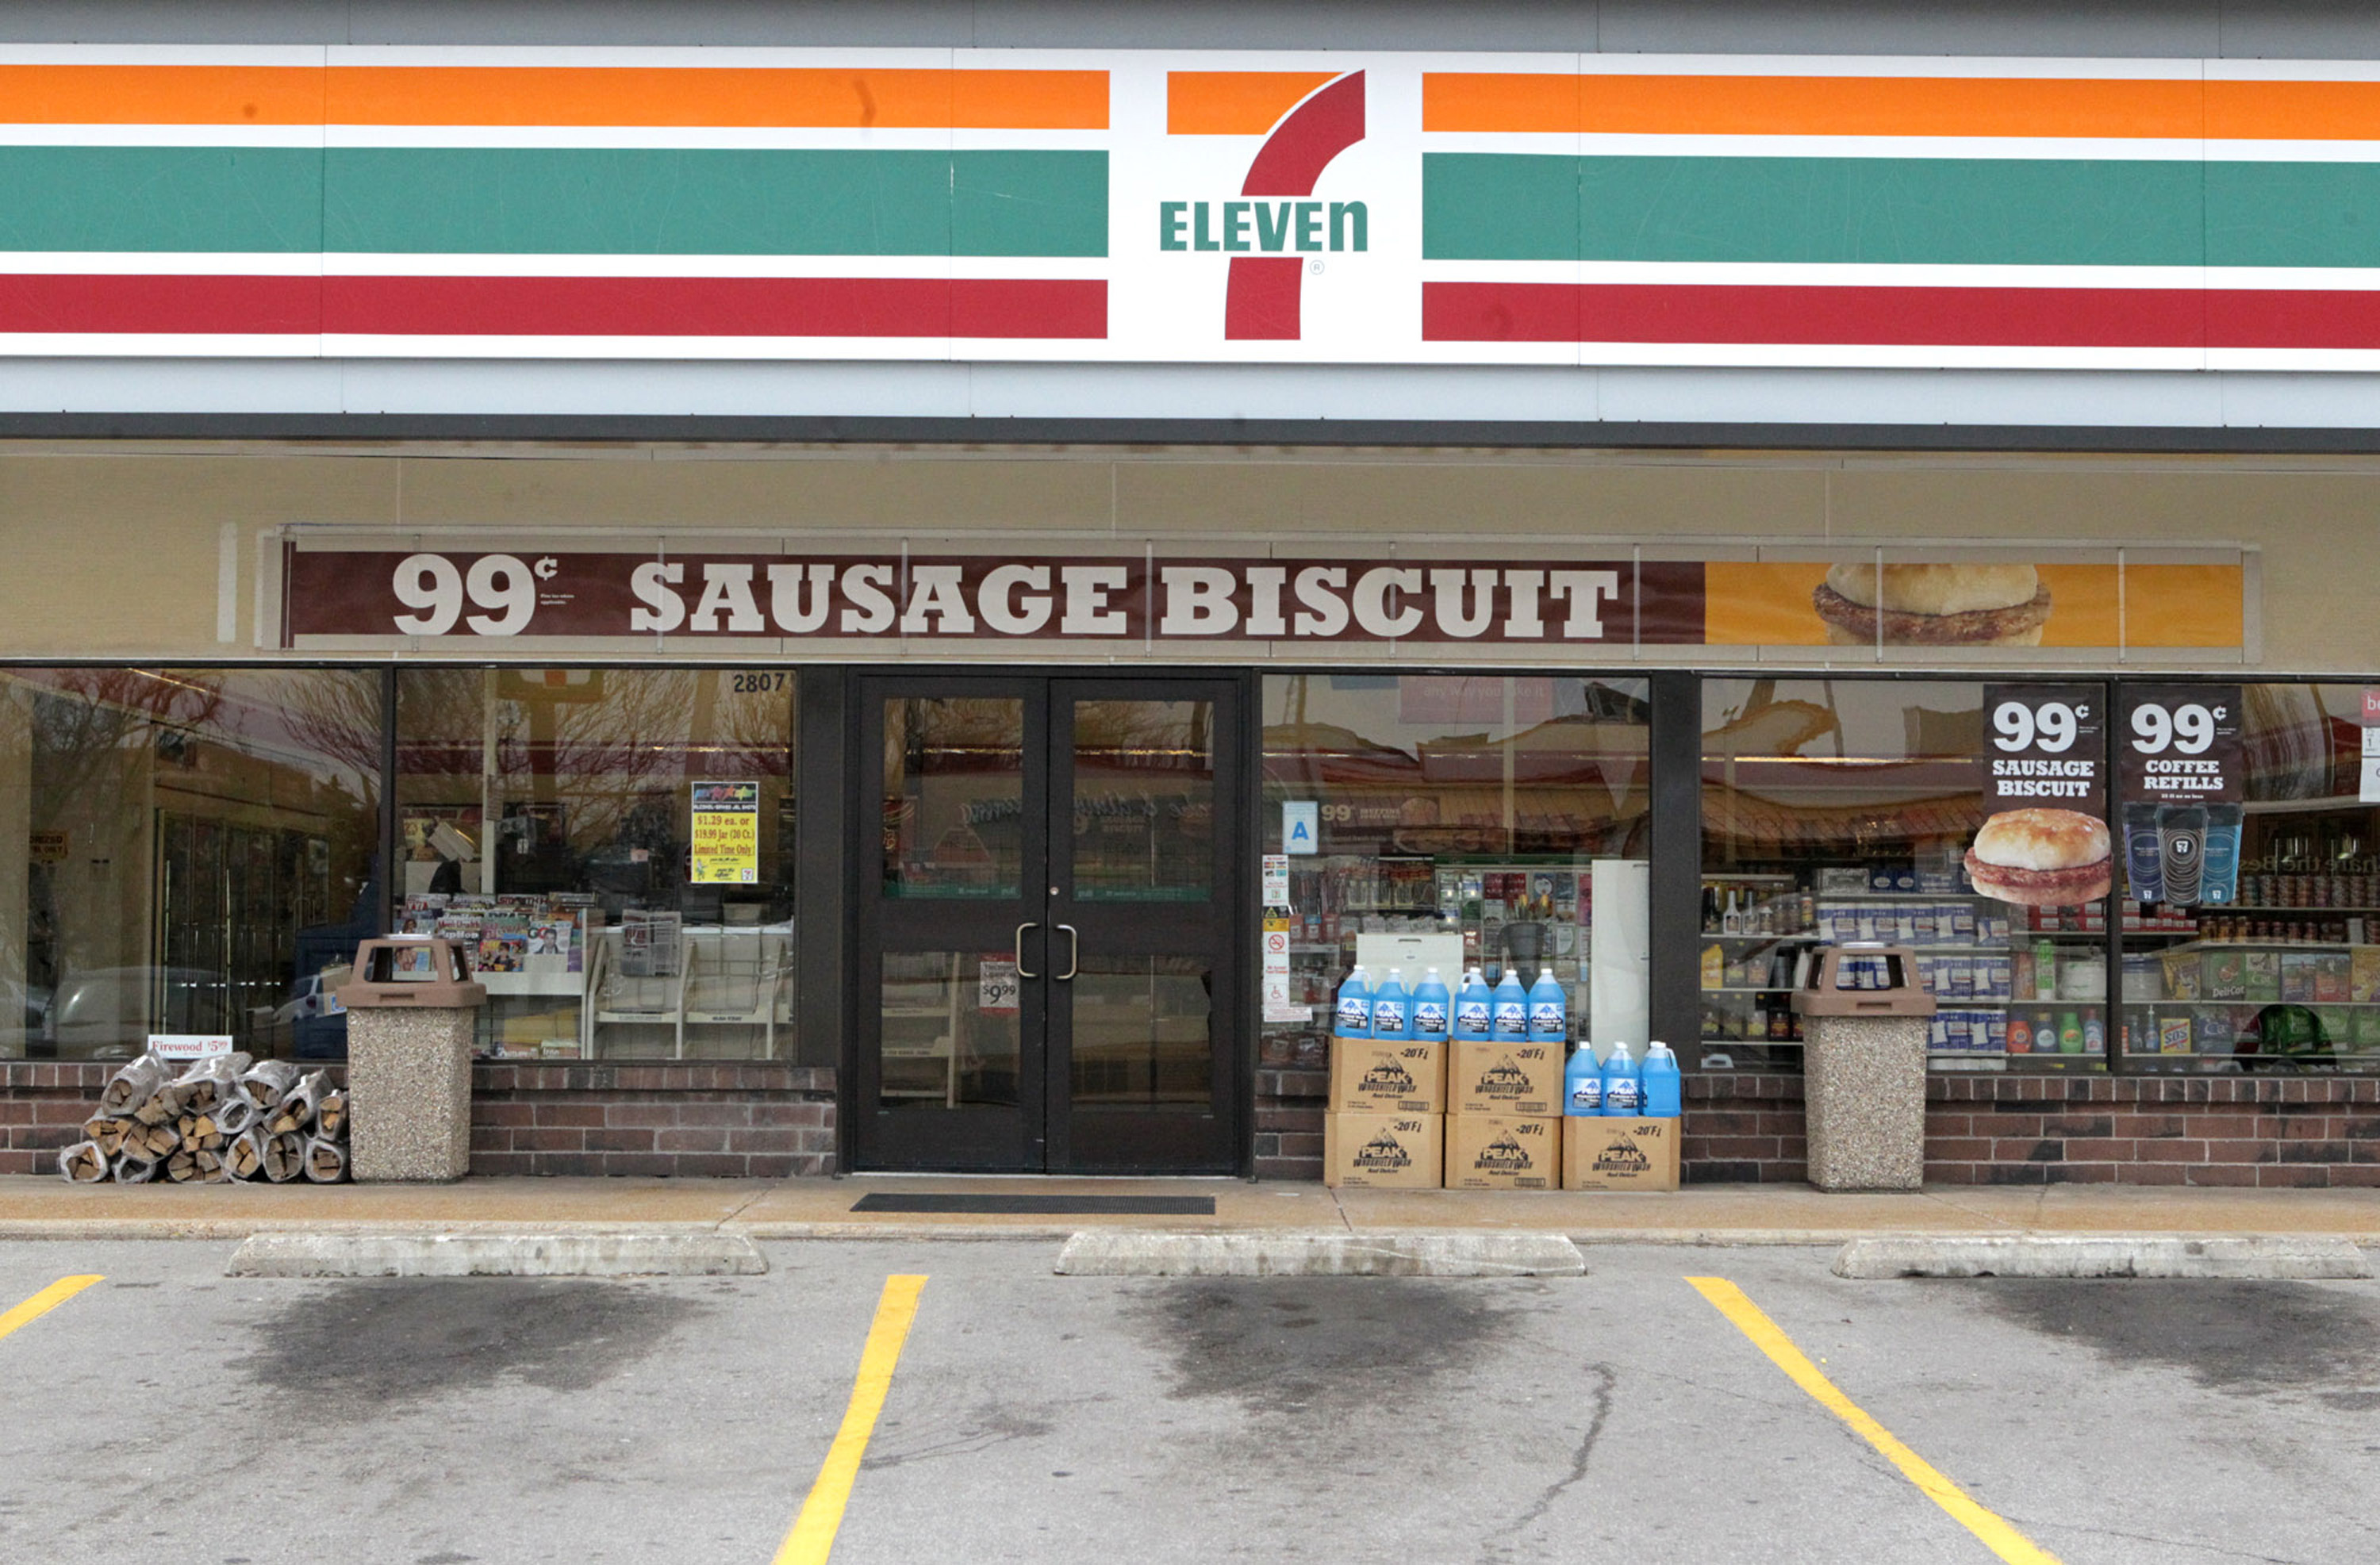 7 eleven store franchise for sale at 3362 tamiami trail